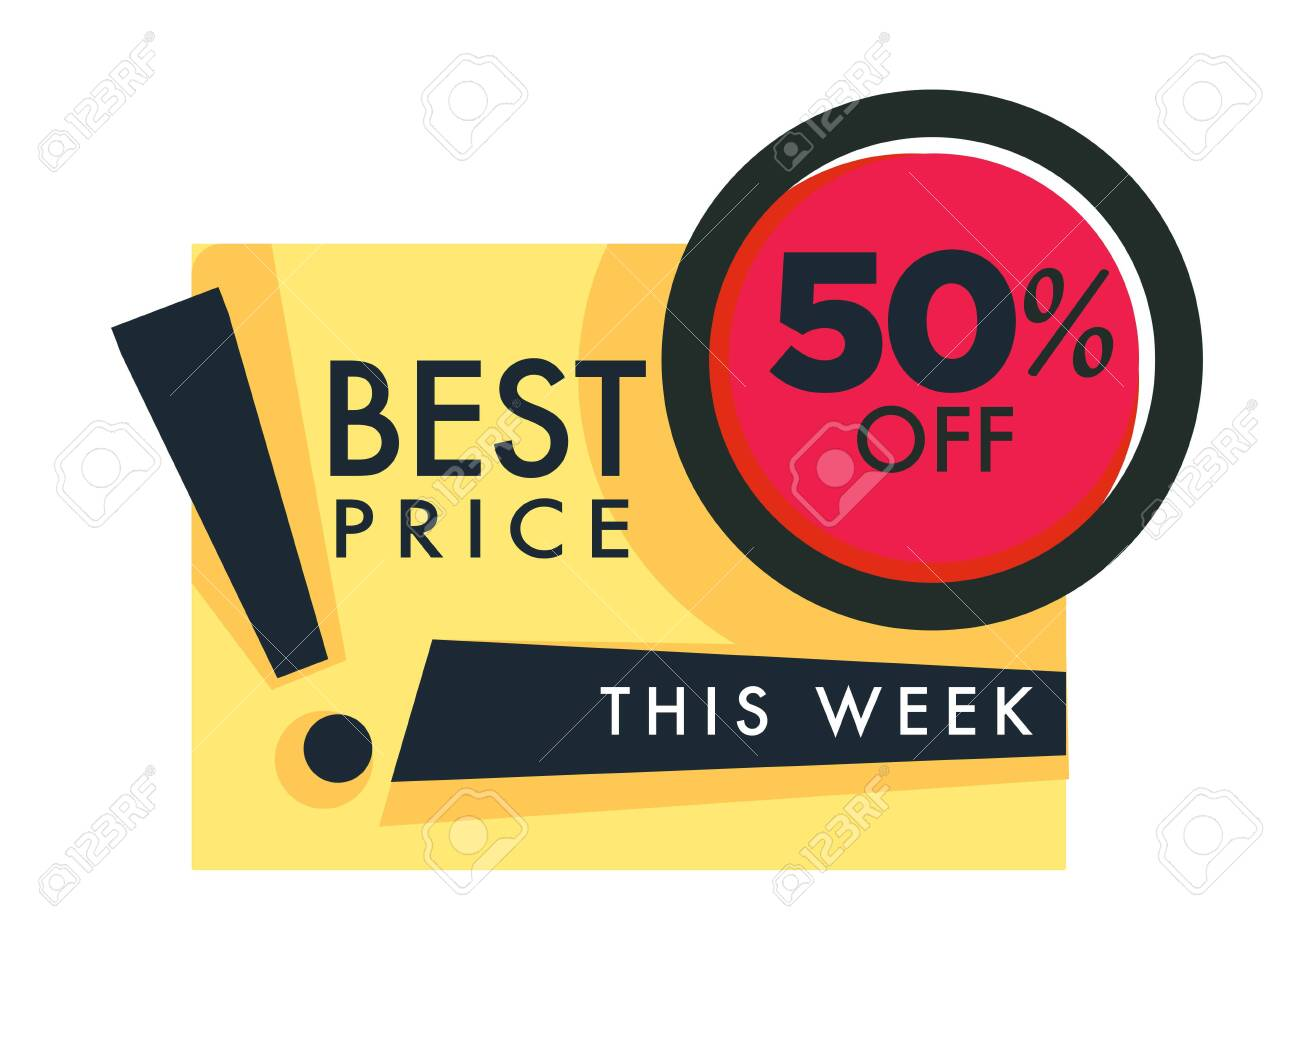 Weekend Sale And Discount Best Price 50 Off Isolated Icon Vector Royalty Free Cliparts Vectors And Stock Illustration Image 132868664